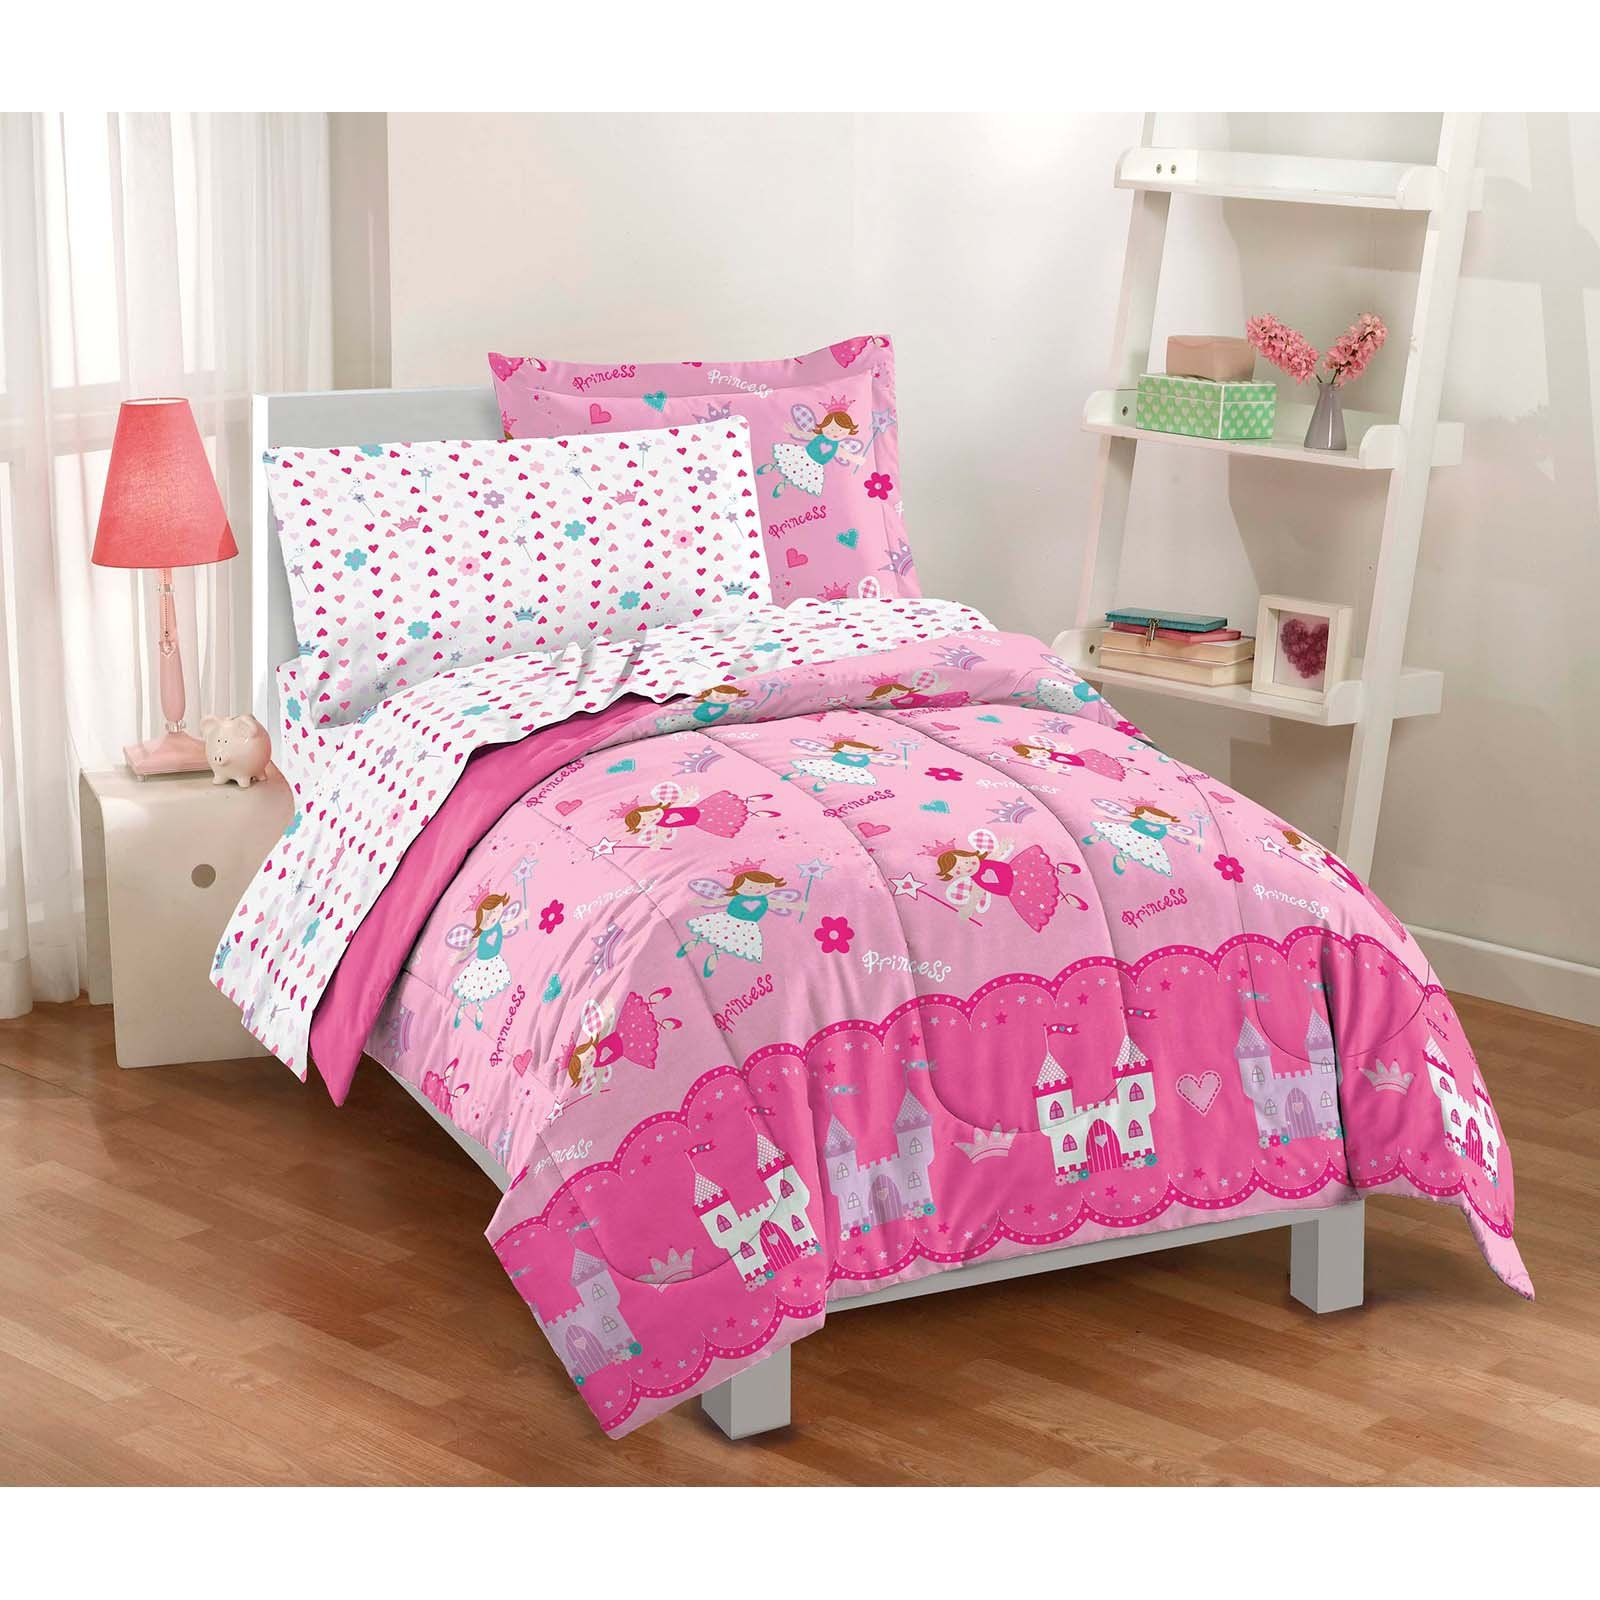 Dream Factory Magical Princess Twin Mini Bed In A Bag Toddler